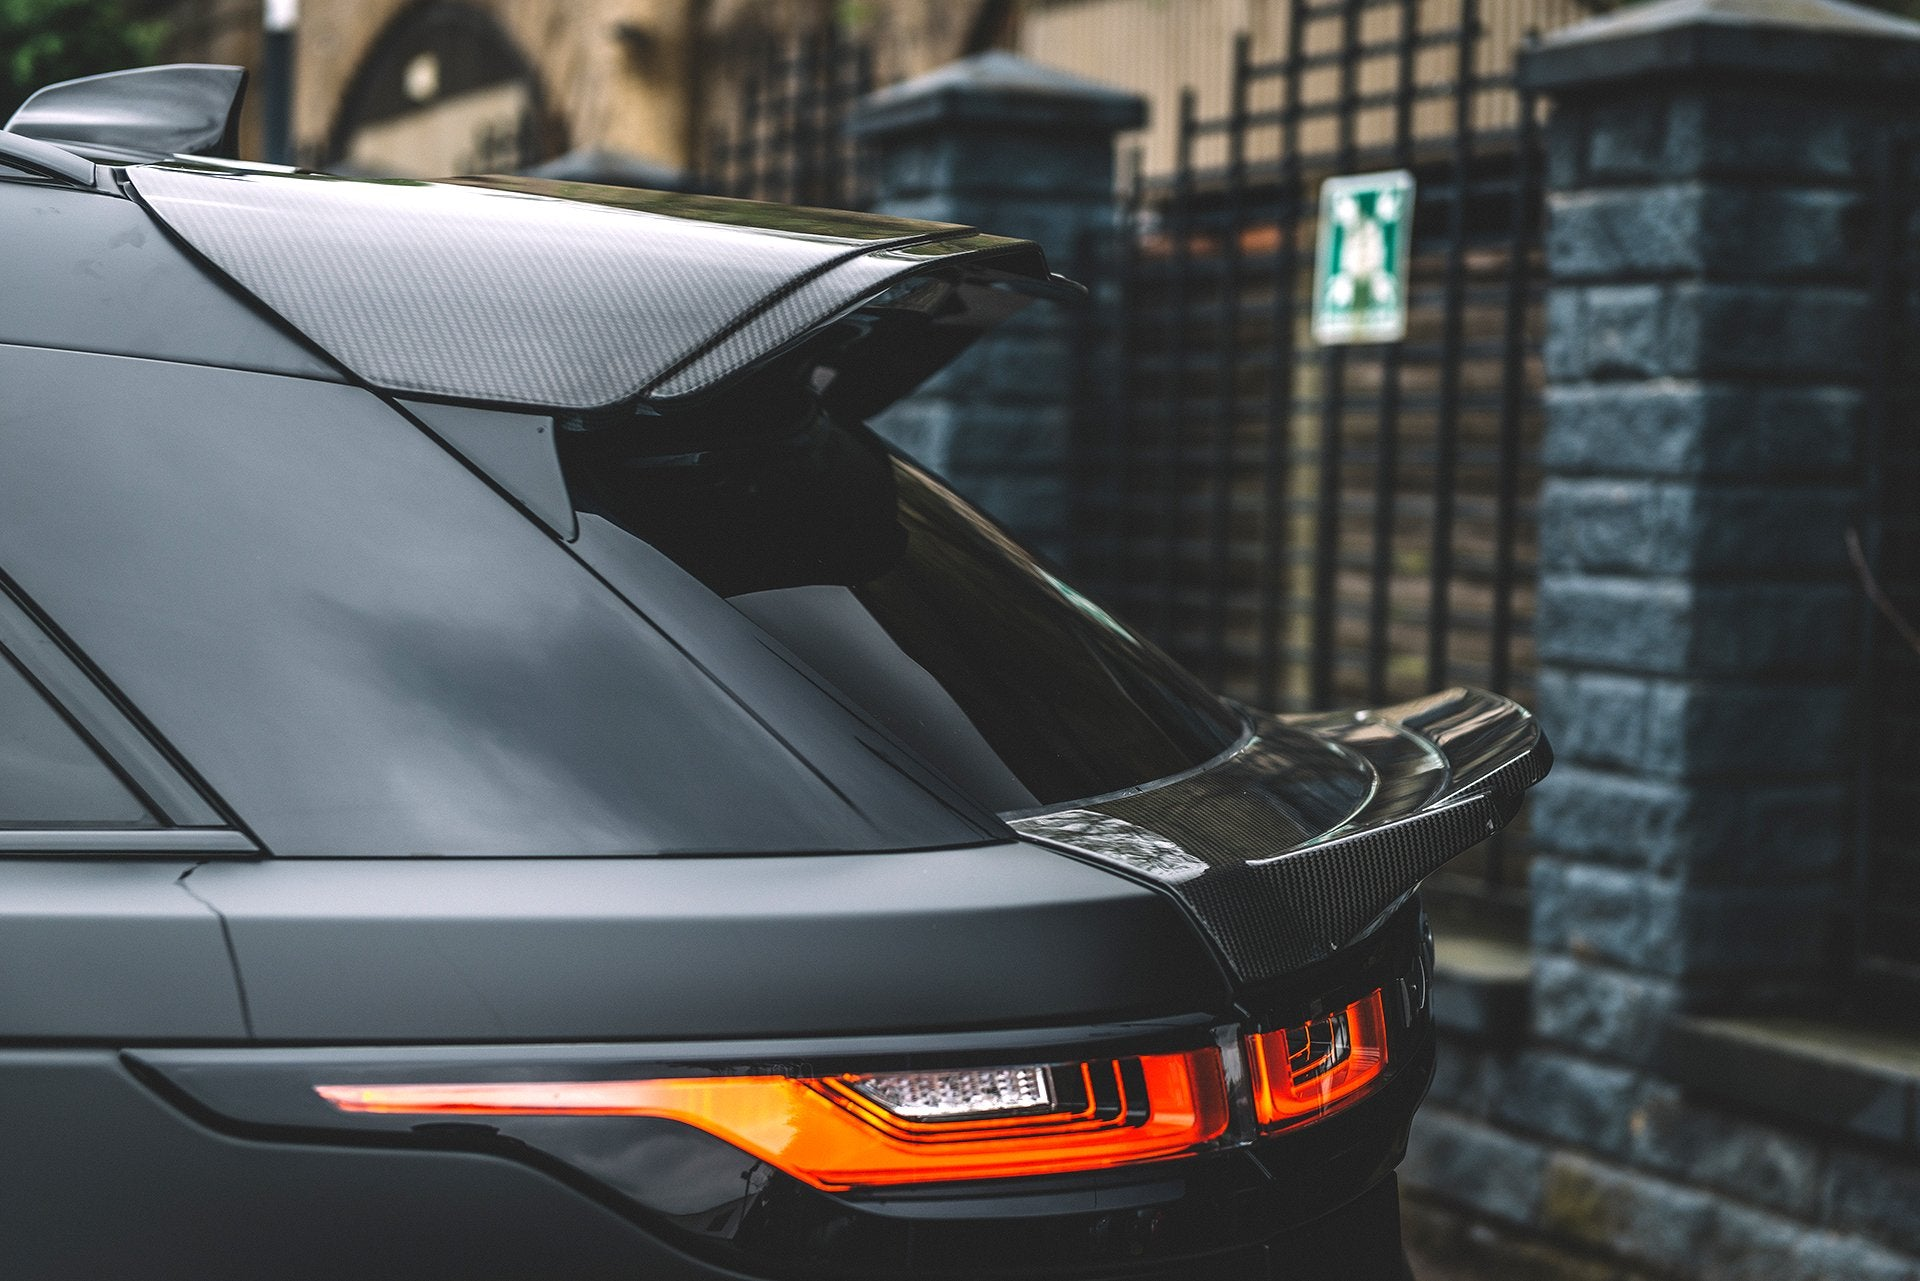 Land Rover Range Rover Velar (2017-Present) Exposed Carbon Large Upper Rear Roof Wing by Kahn - Image 2560